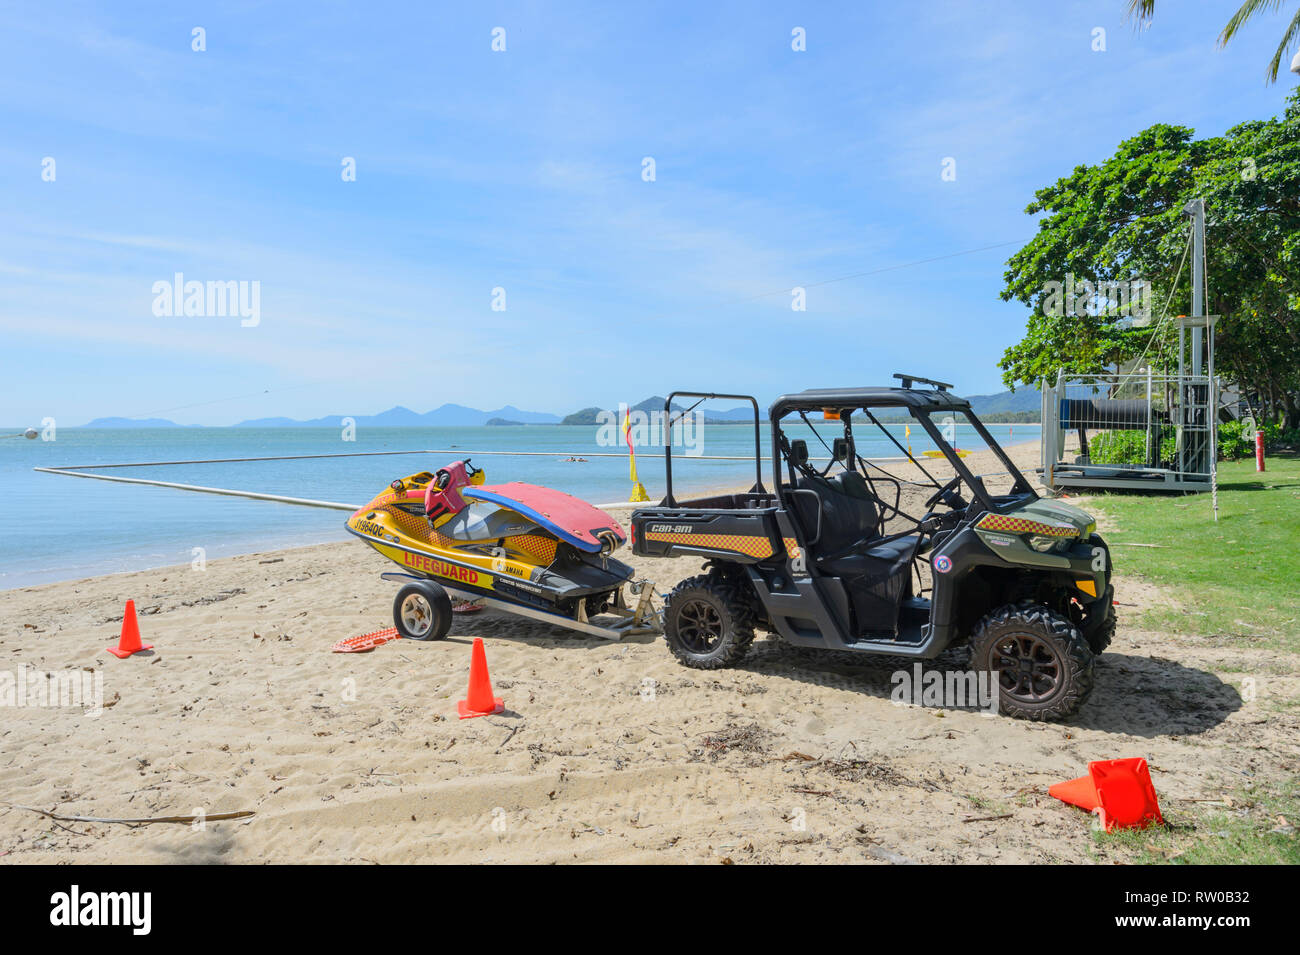 21d6afe02ff3 Lifeguard Buggy Stock Photos   Lifeguard Buggy Stock Images - Alamy